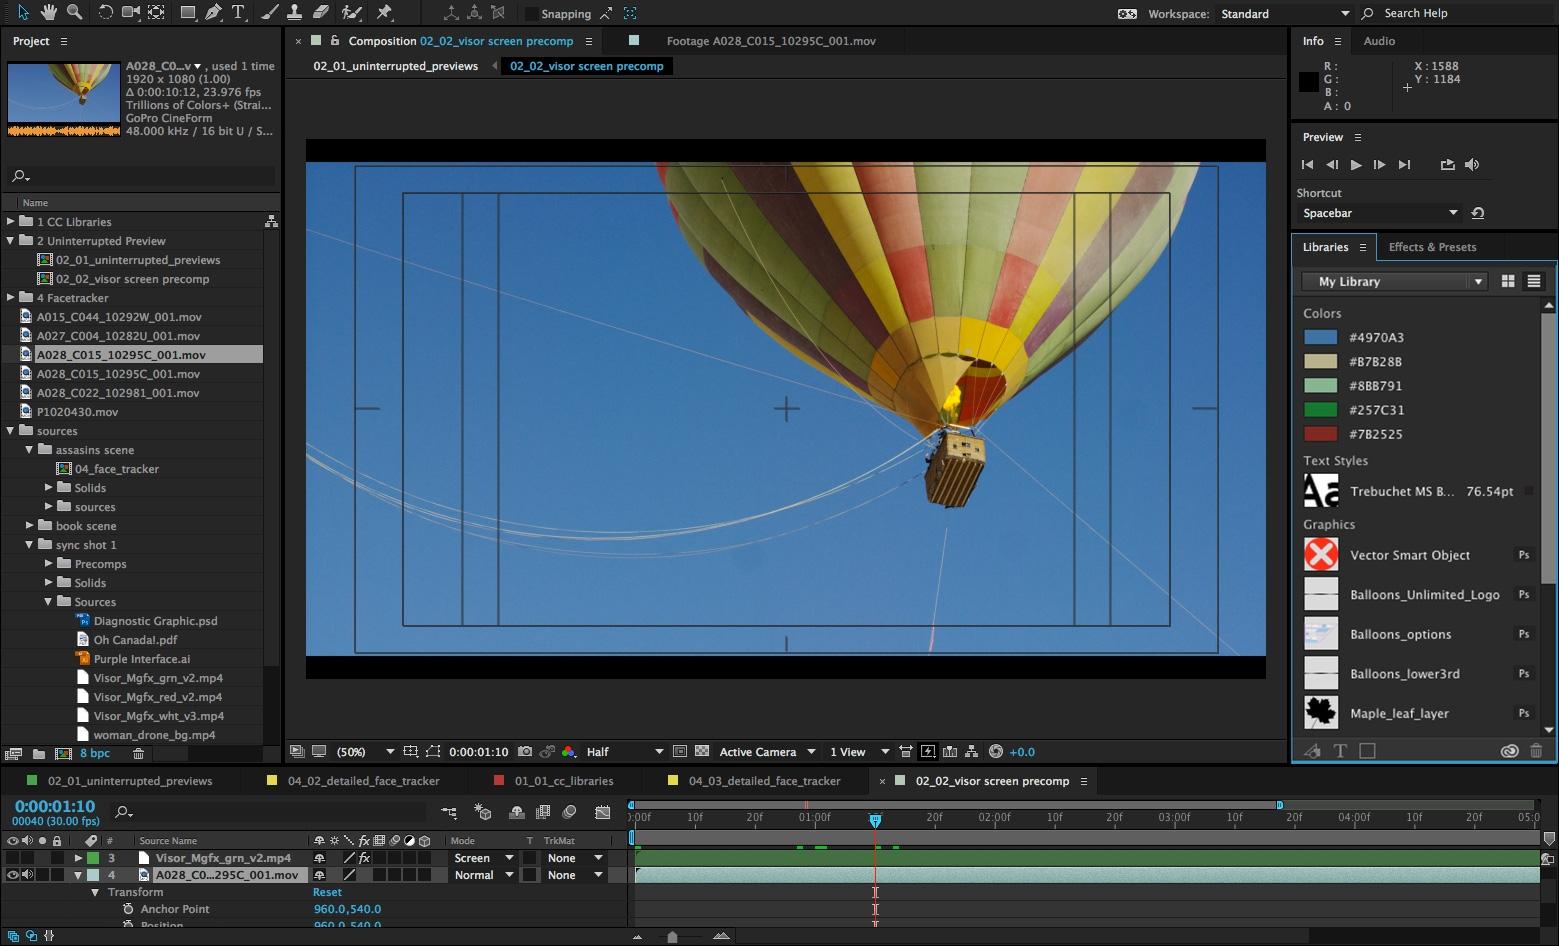 Adobe CC Update Previews New Features In Video Tools After - Awesome slideshow after effects scheme